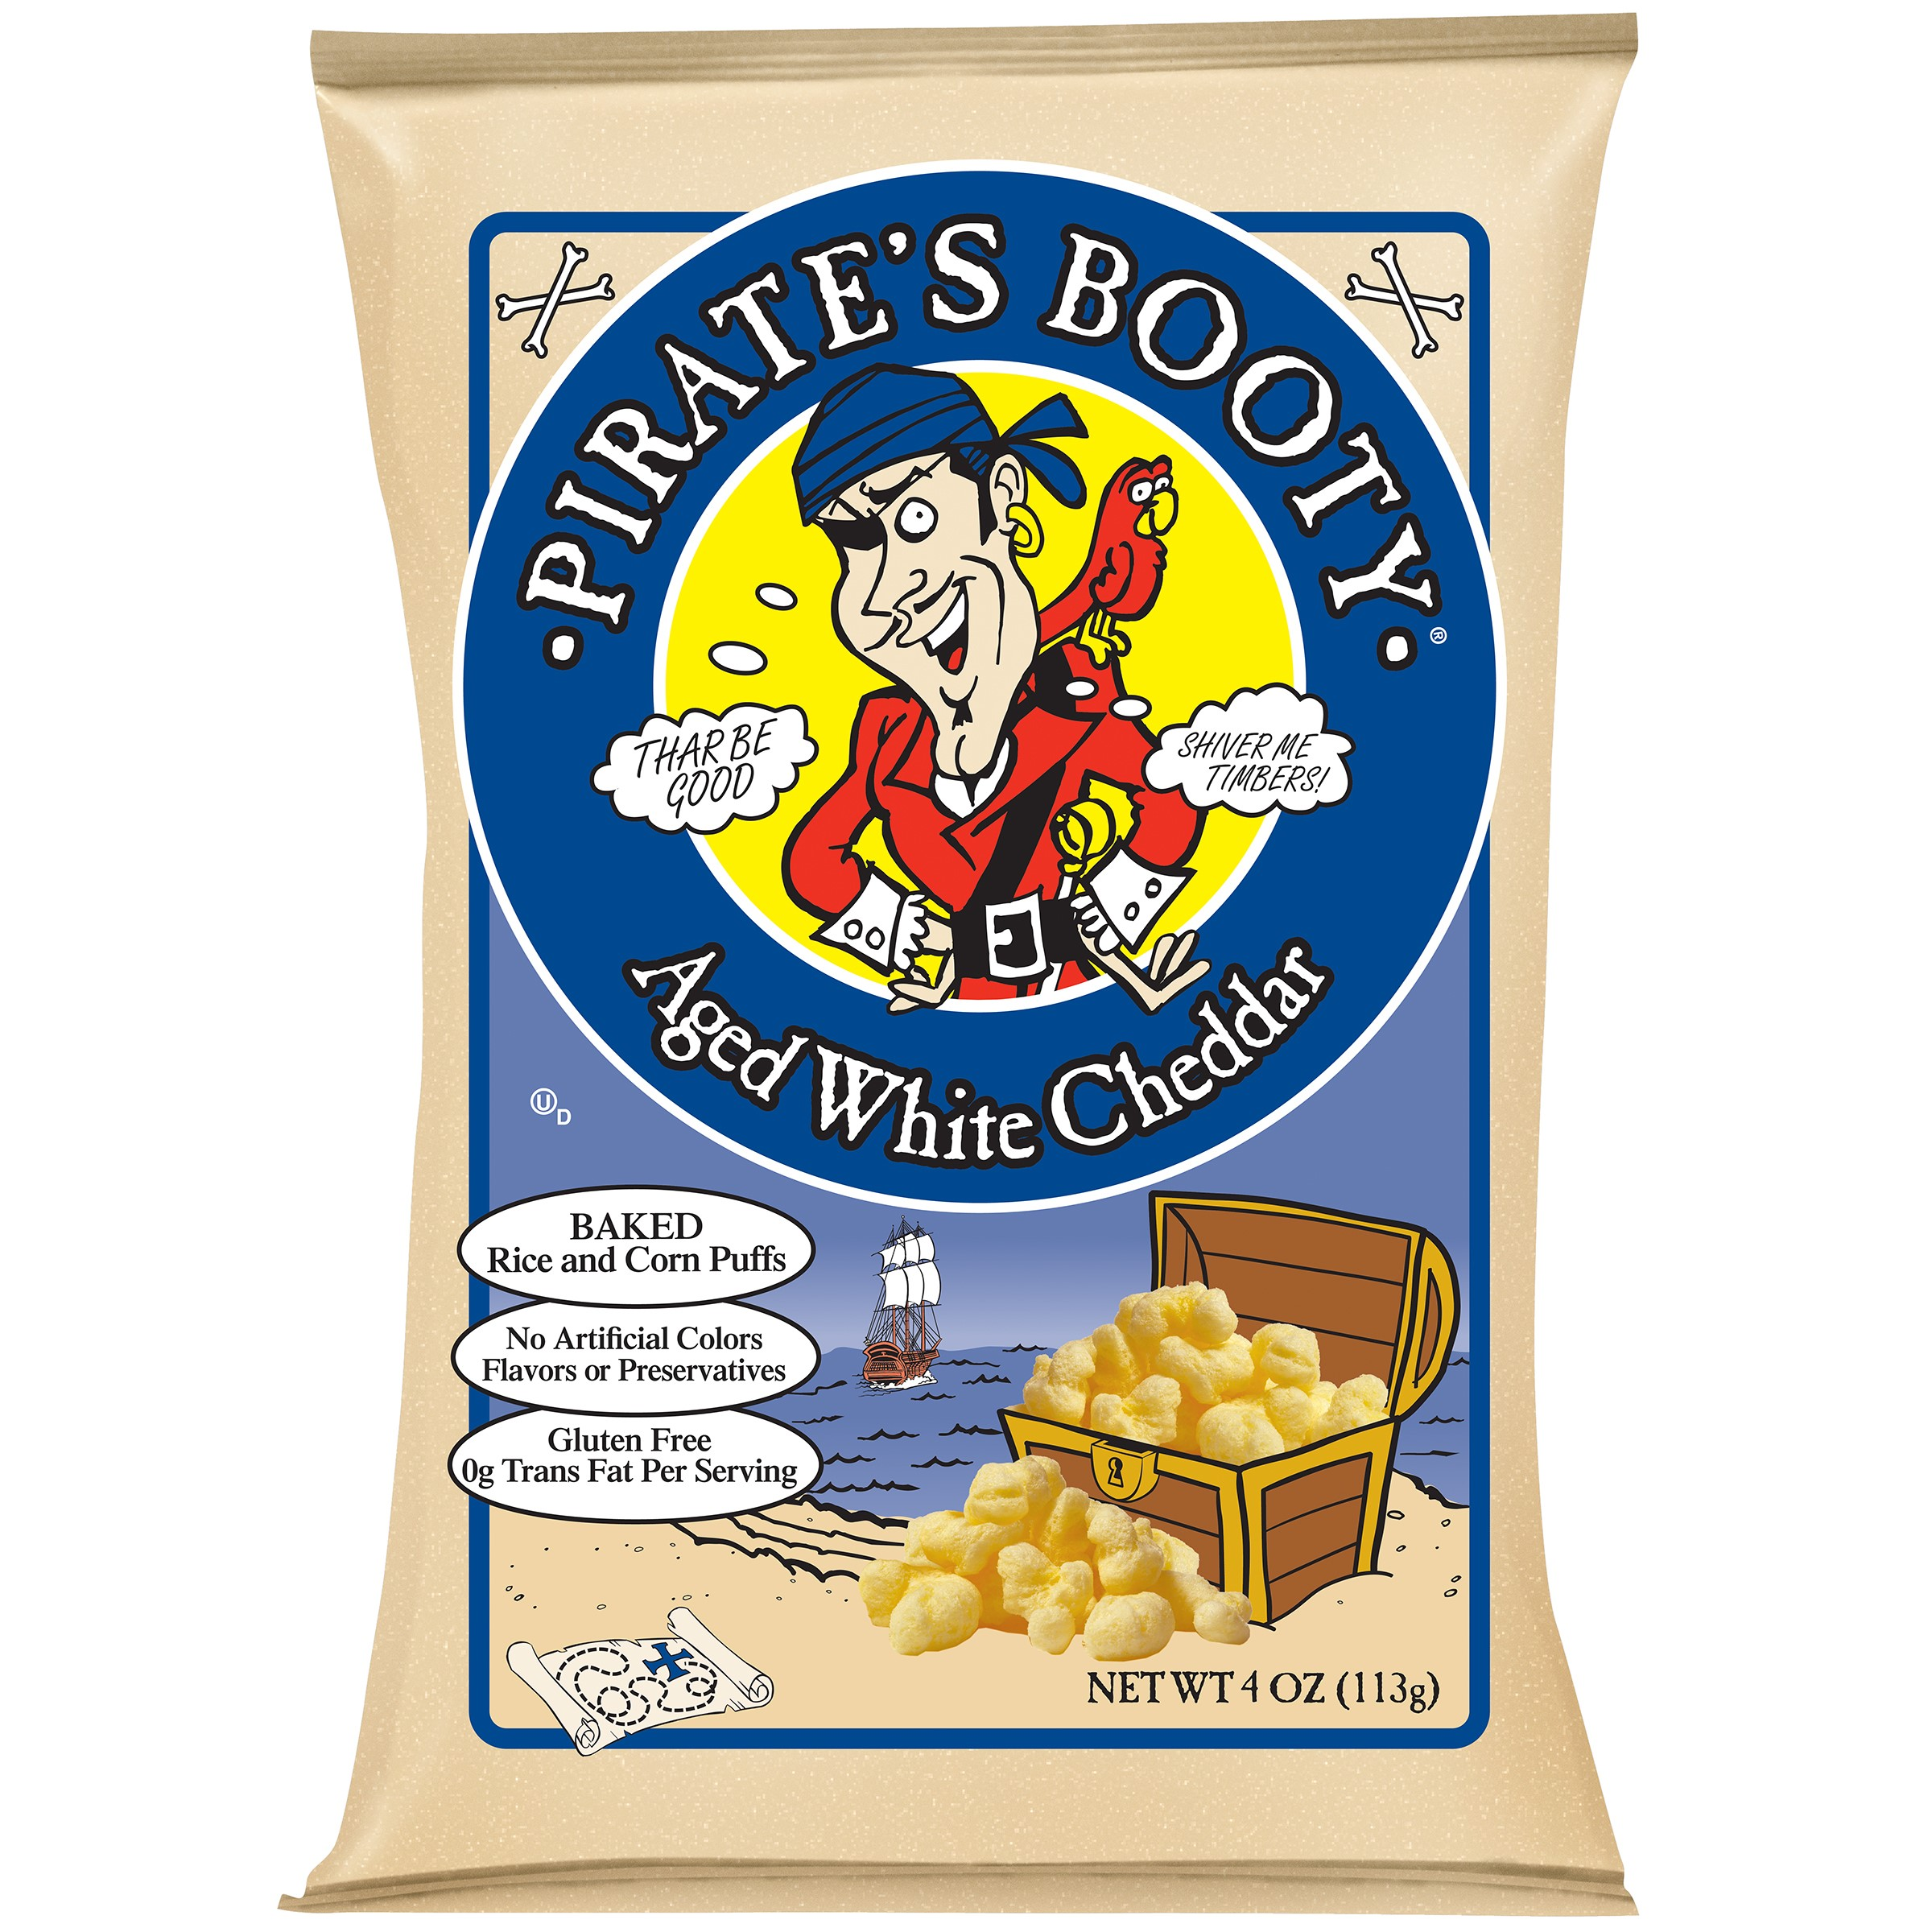 Pirate's Booty Puffs, Aged White Cheddar, 4 Oz